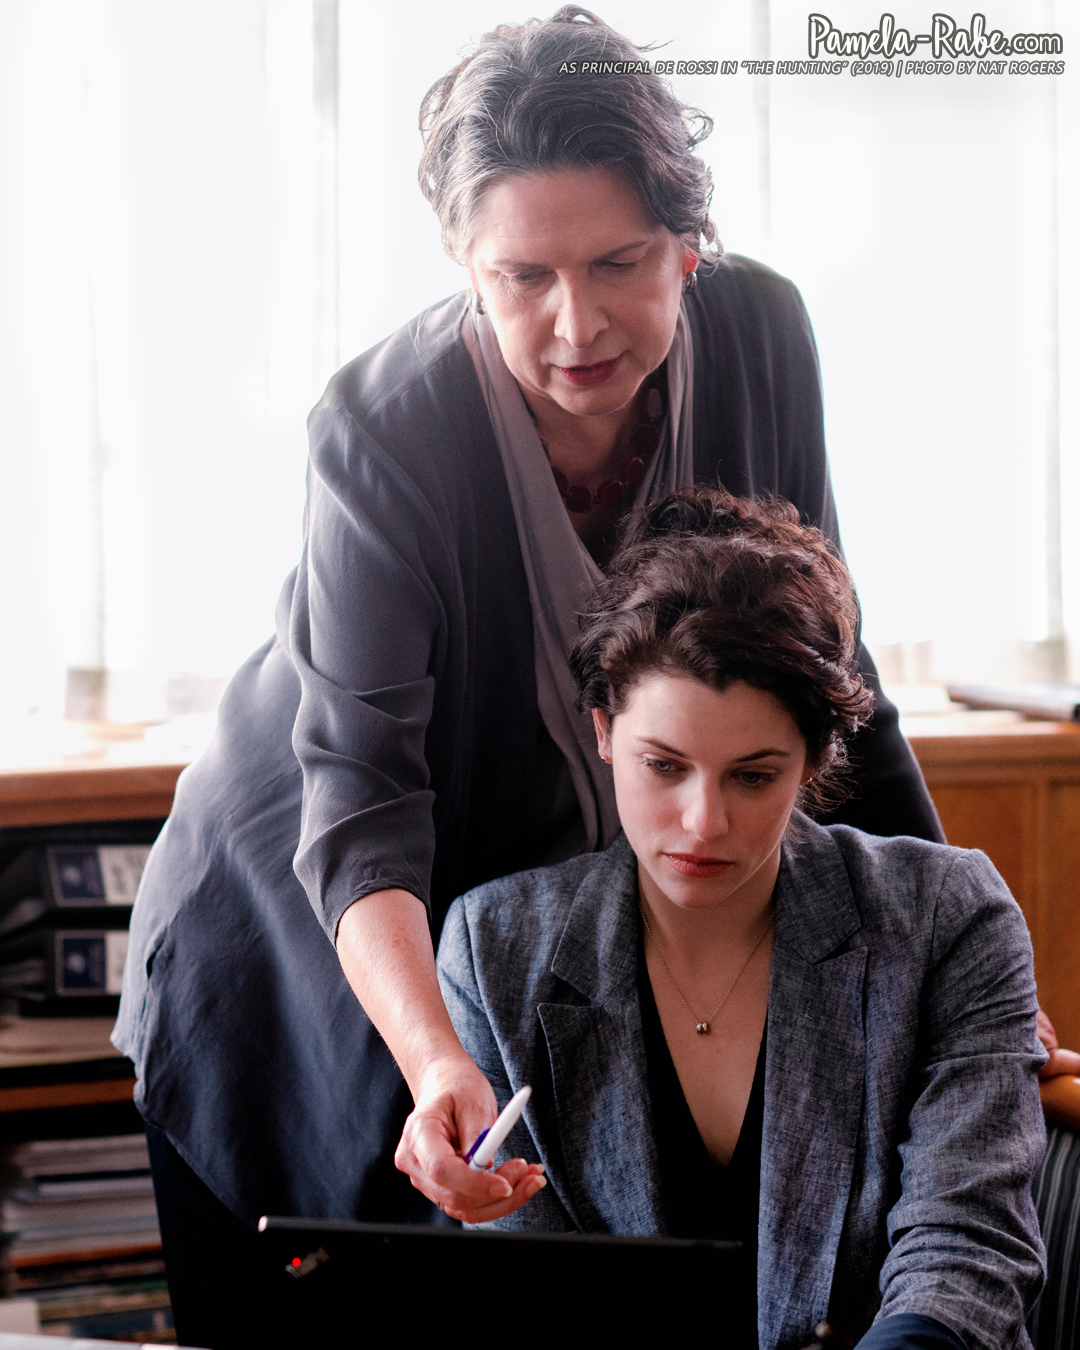 Pamela Rabe as Principal De Rossi in The Hunting